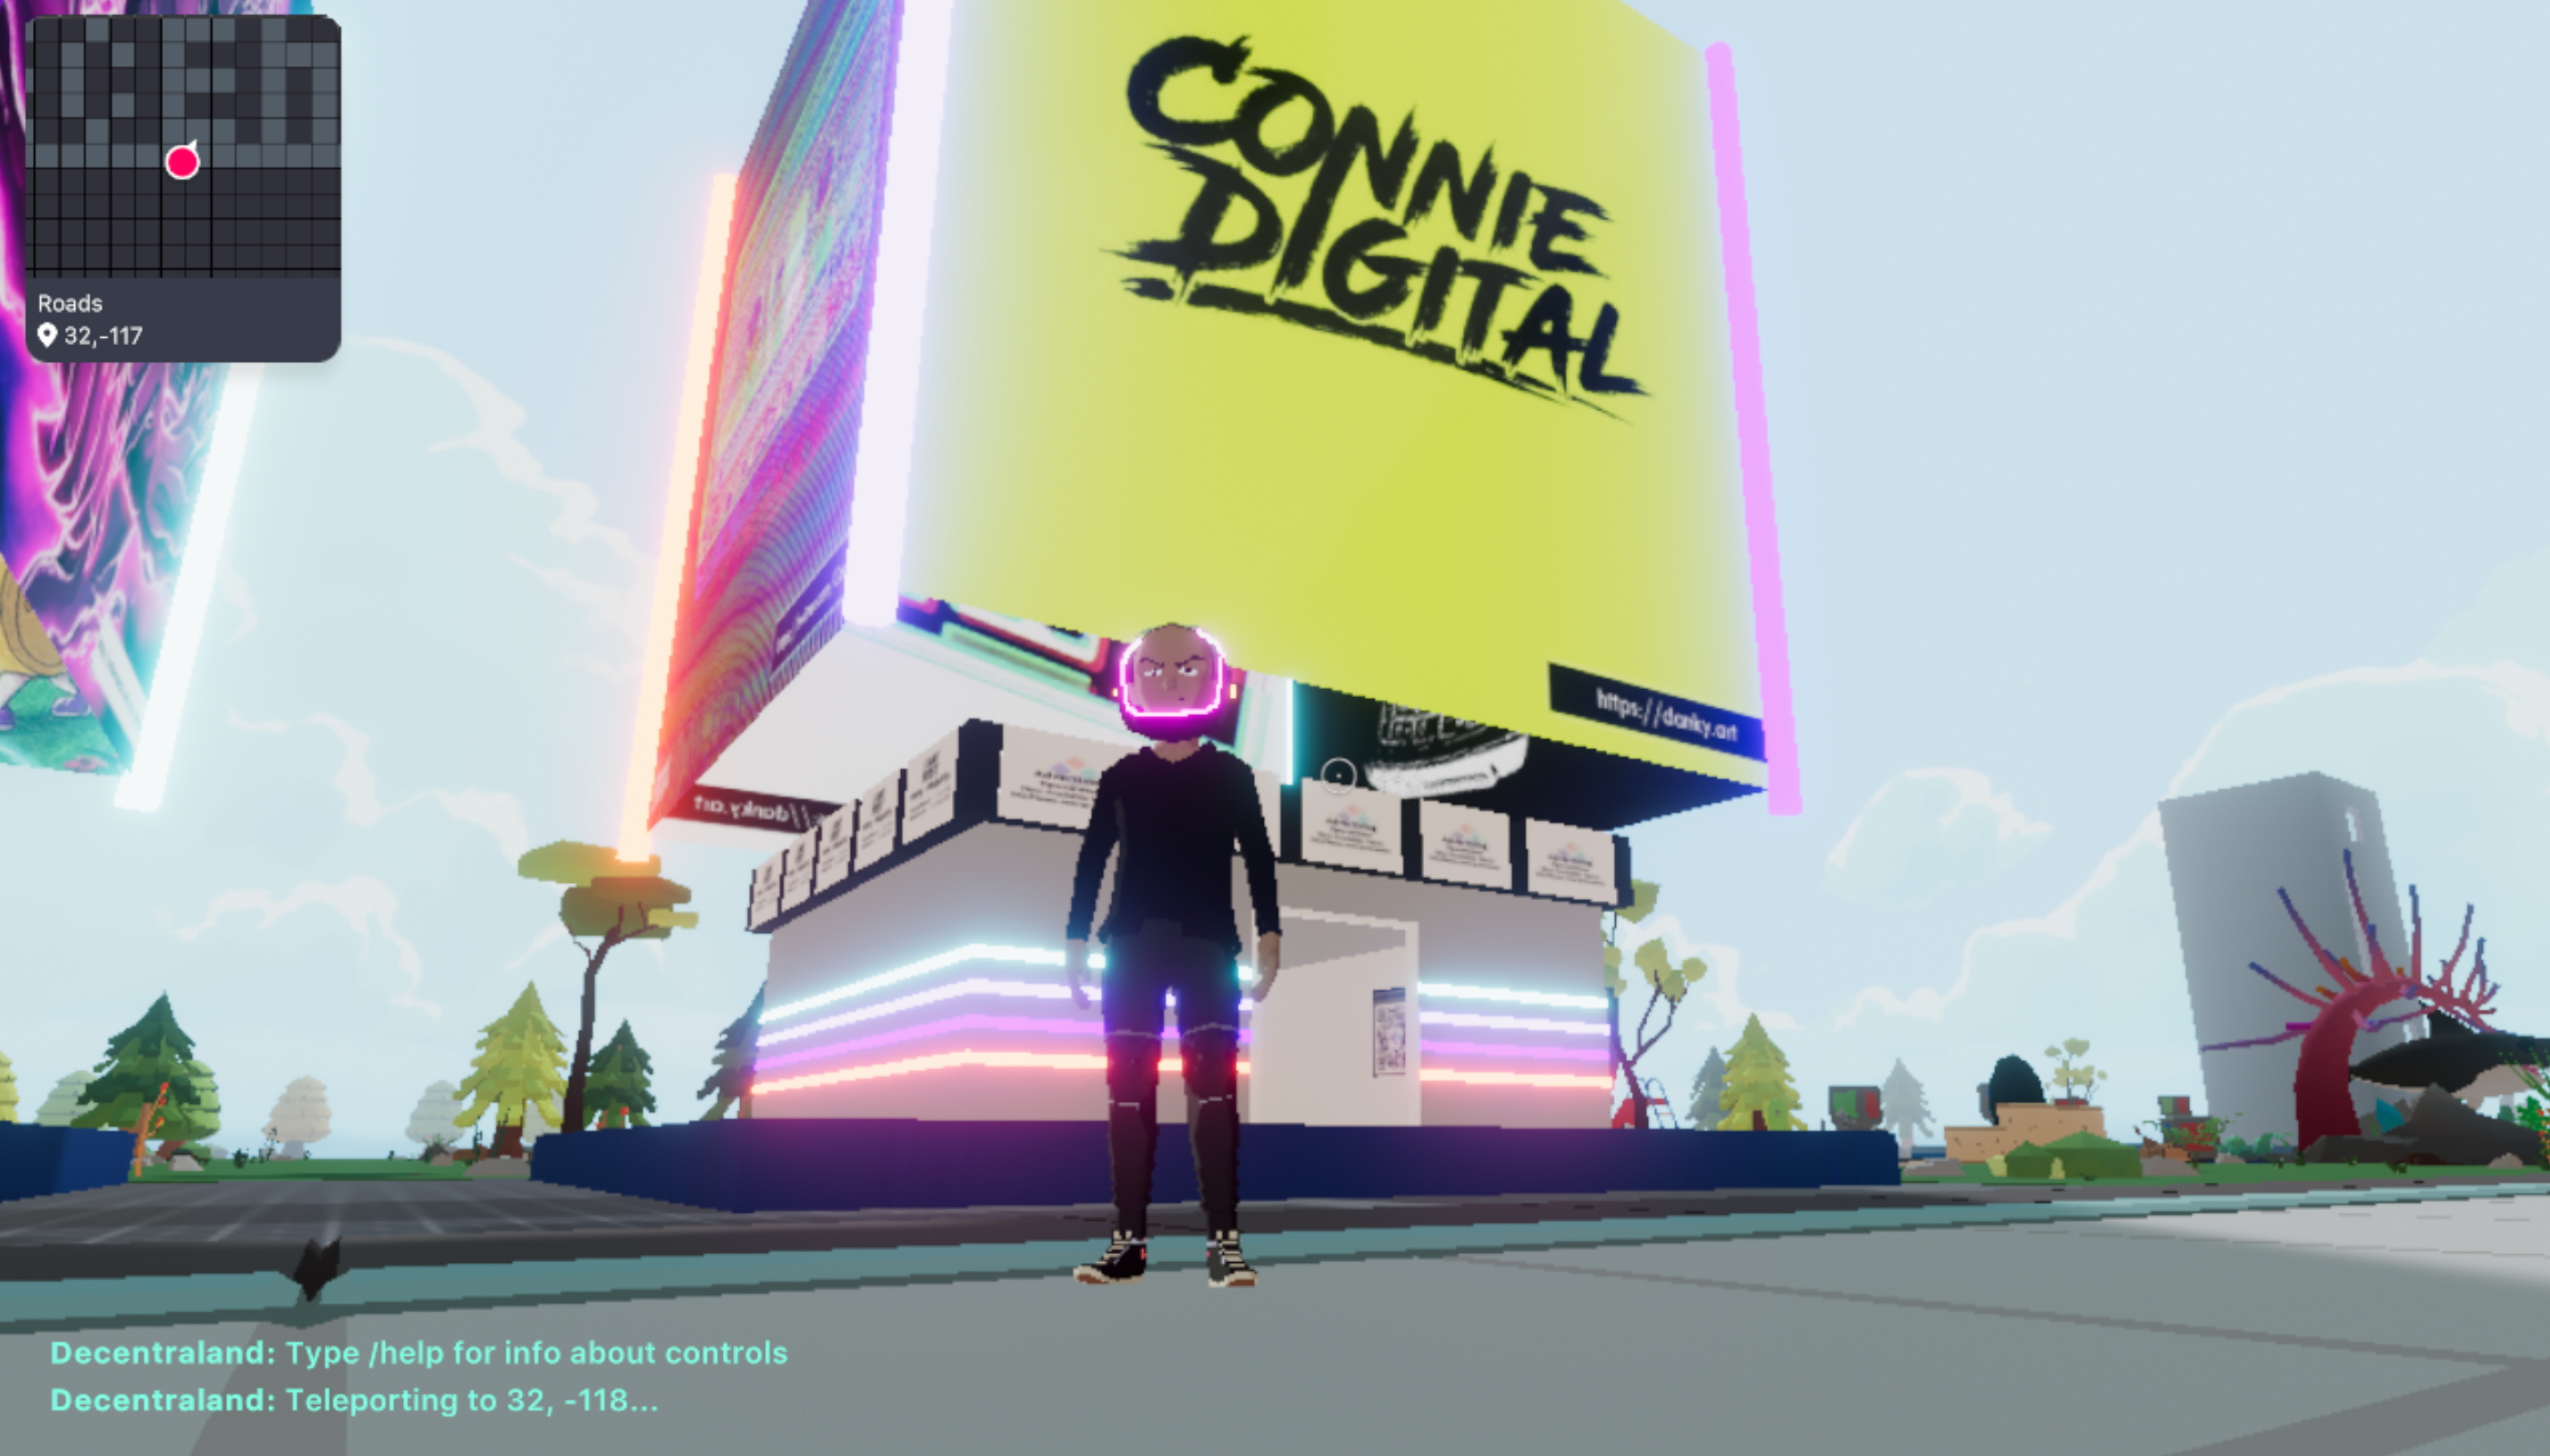 Connie Digital in Decentraland Blockchain VR